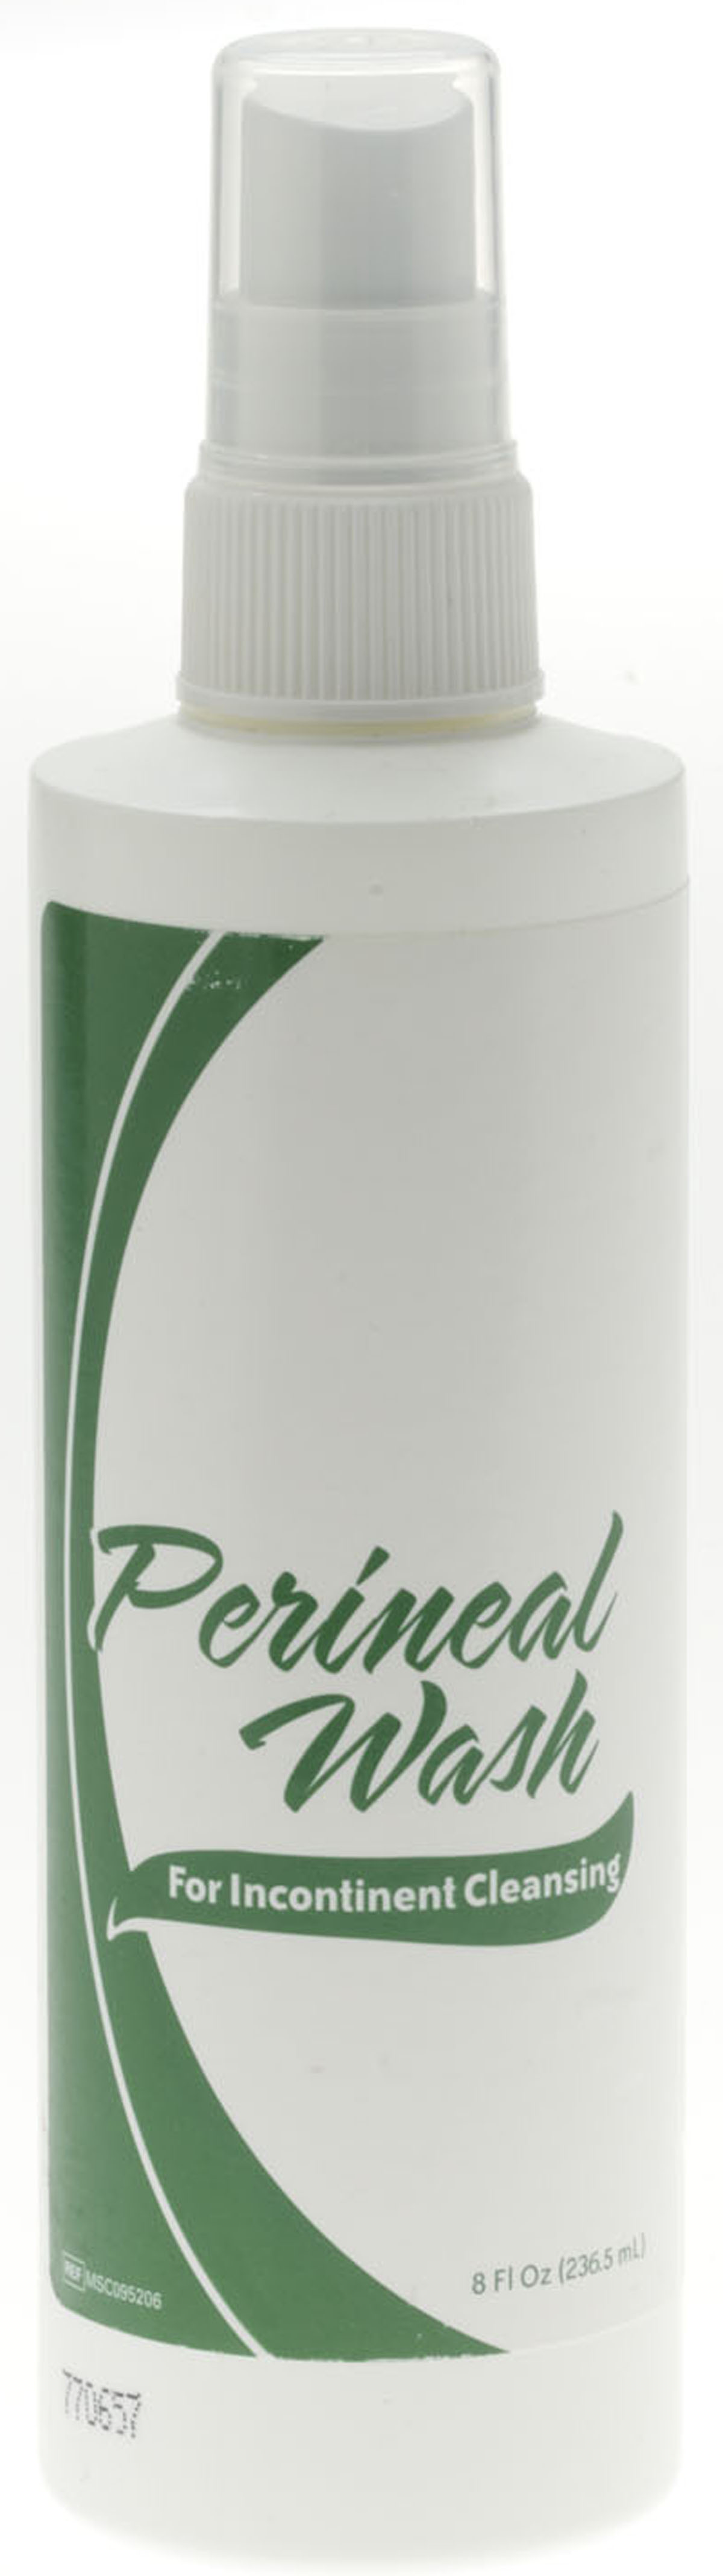 Perineal Wash with Aloe